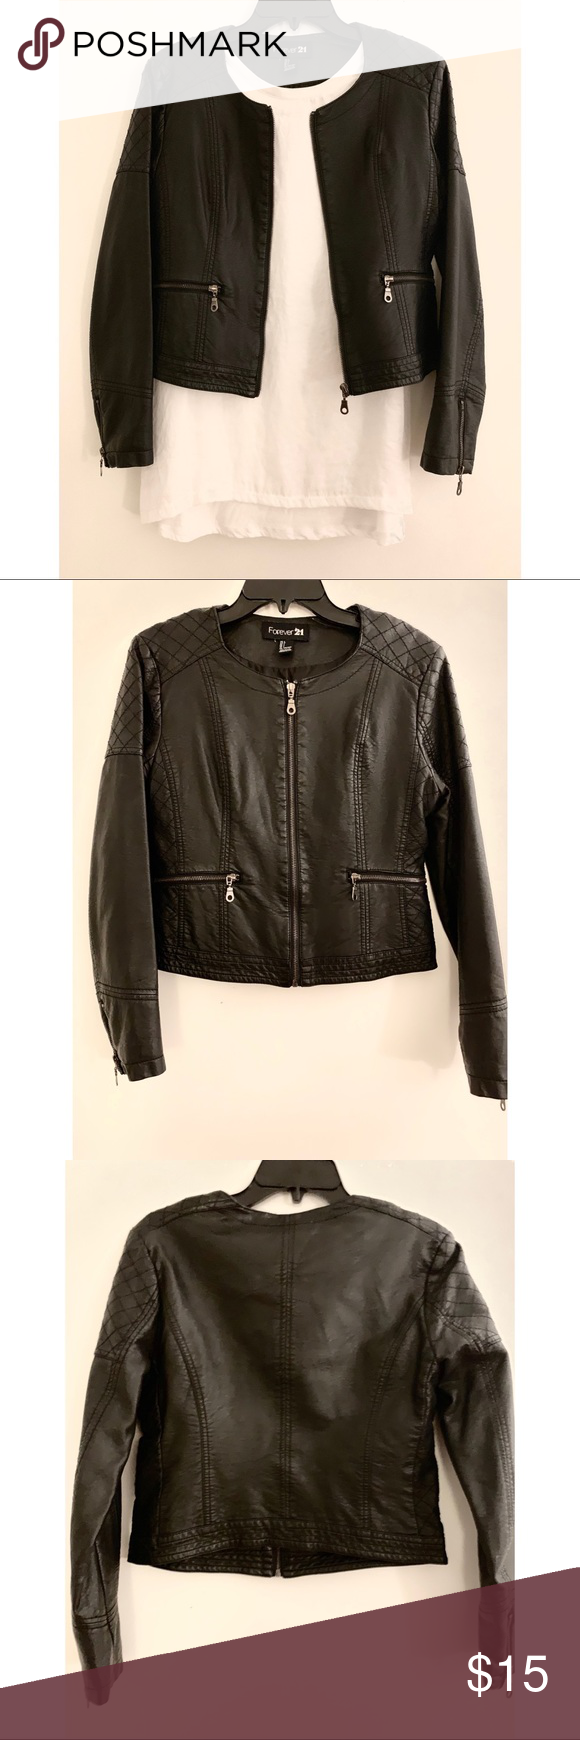 Forever 21 Faux Leather Jacket Faux Leather Jackets Leather Jacket Black Faux Leather Jacket [ 1740 x 580 Pixel ]